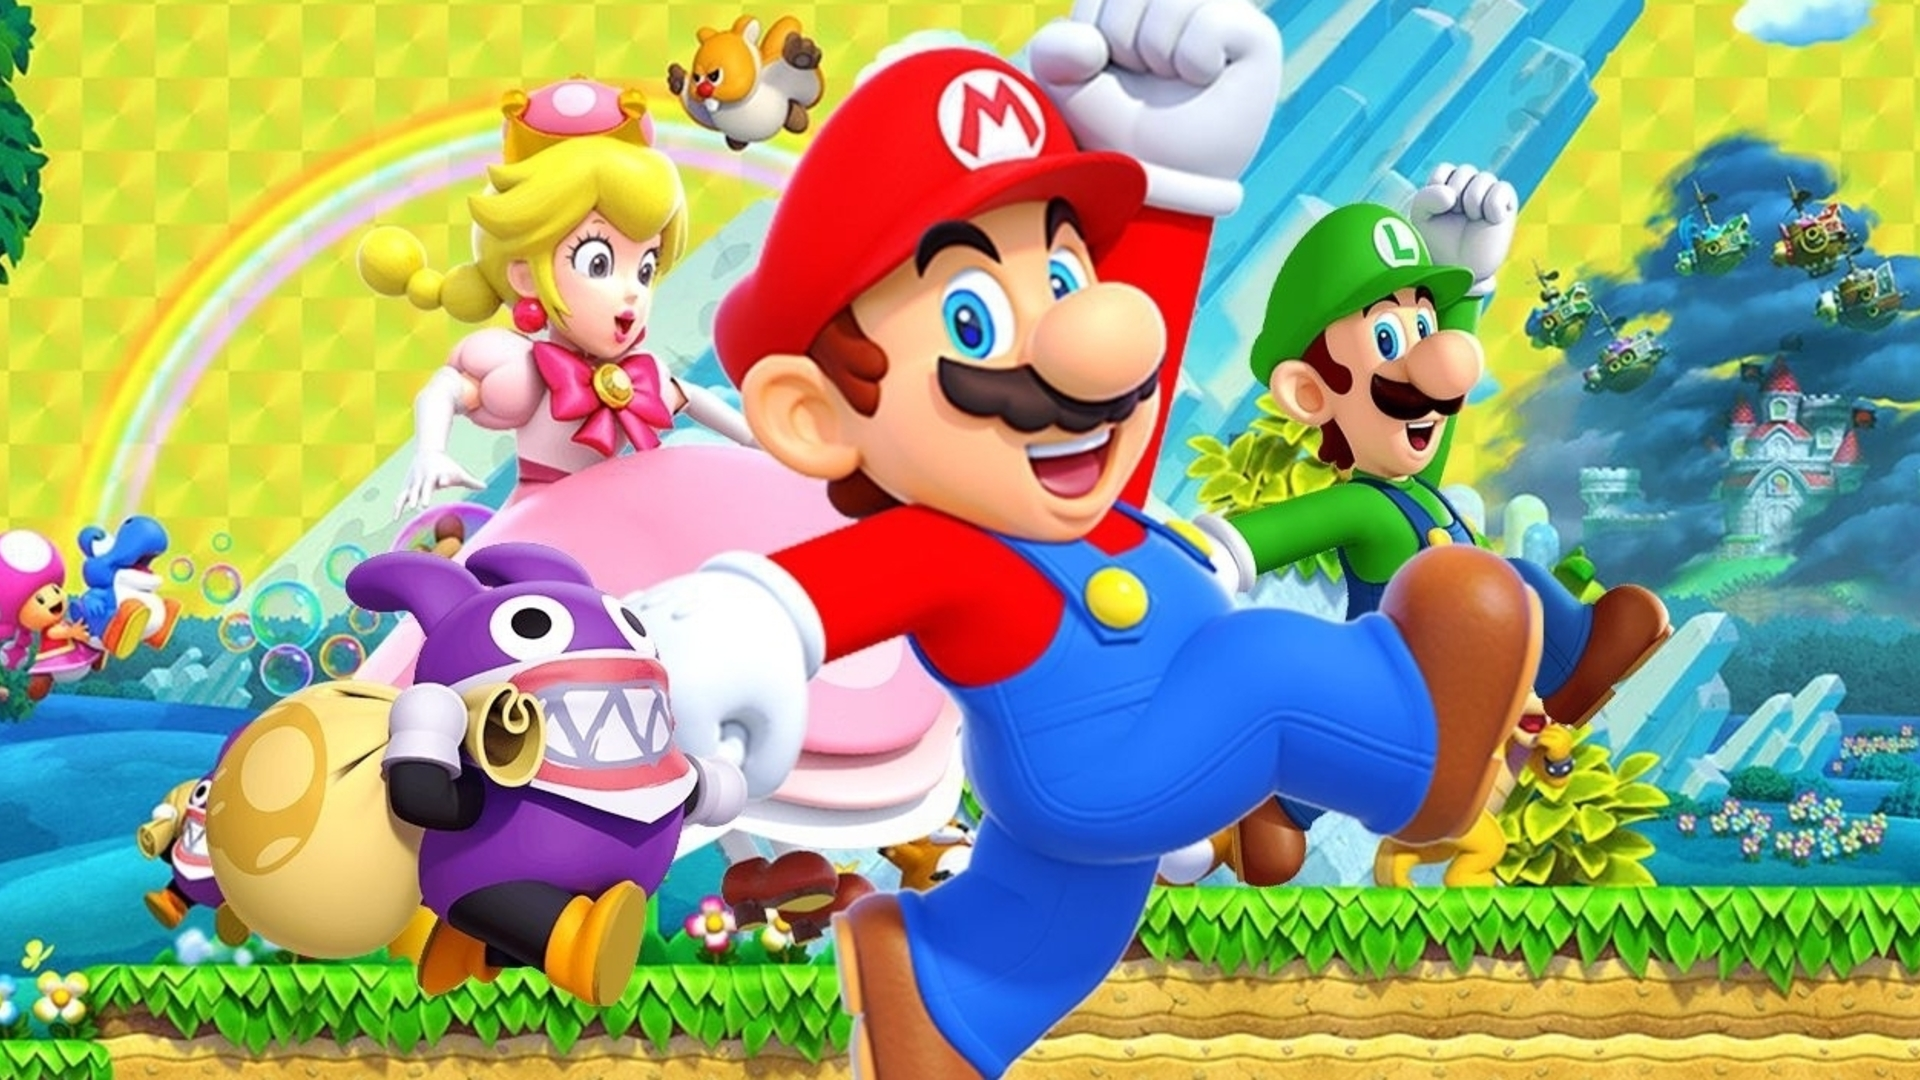 The Official Animated Super Mario Bros Movie Will Be Out In 3